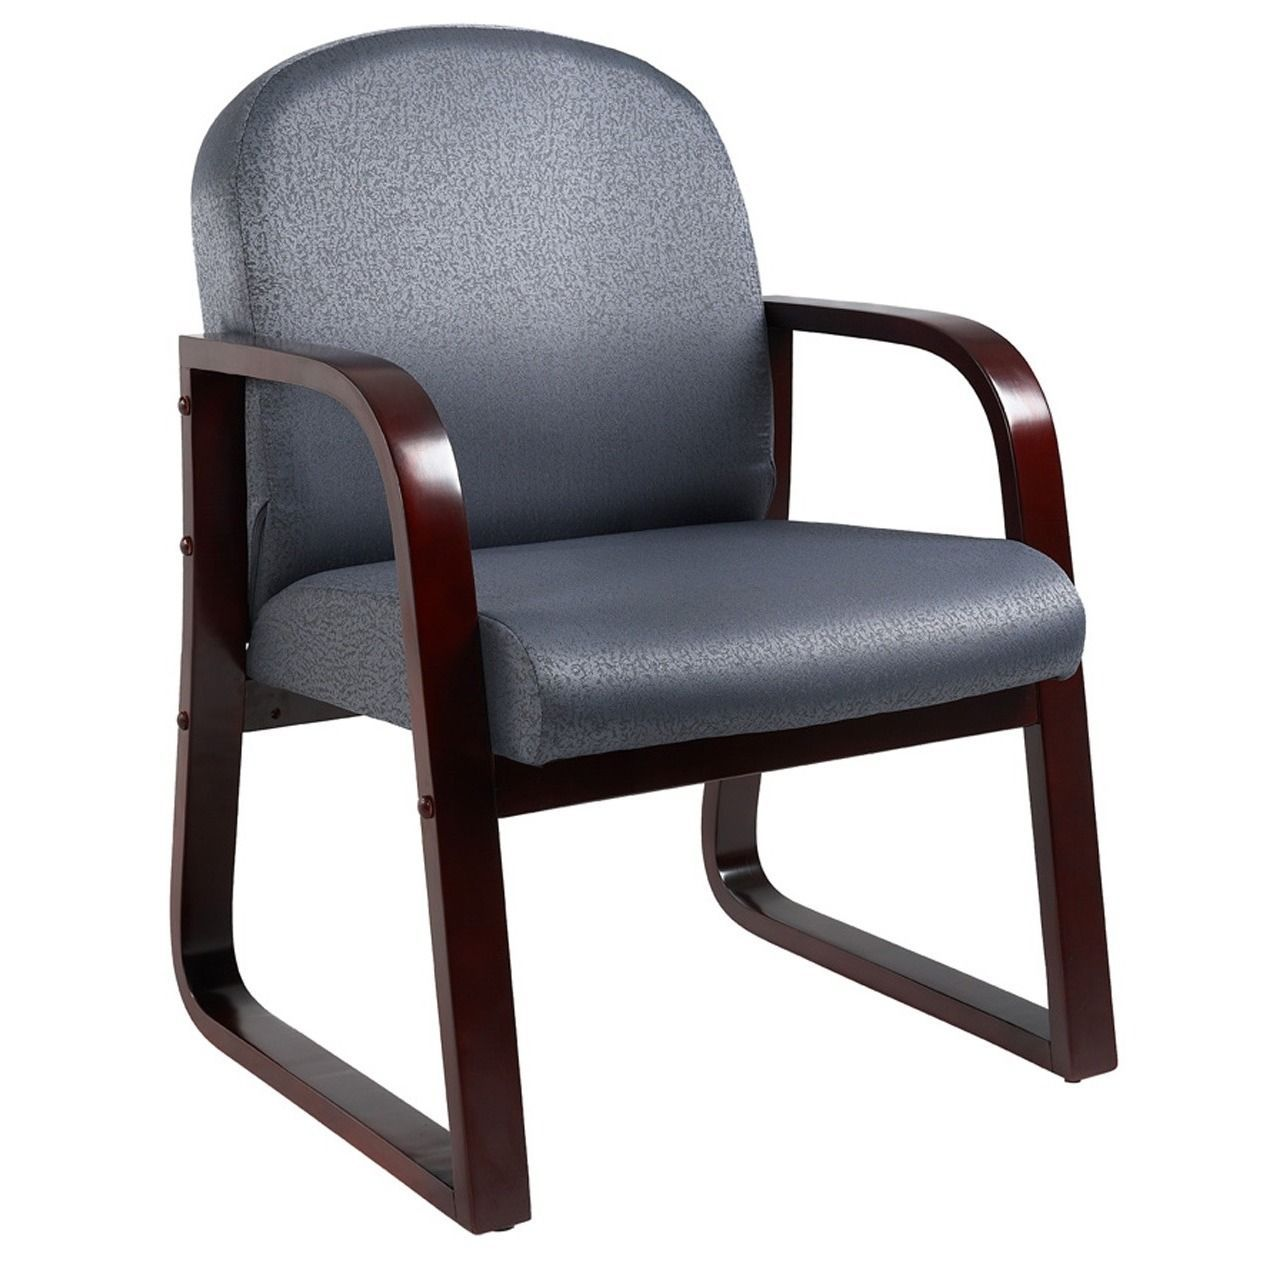 this sturdy reception chair will make a great addition to any